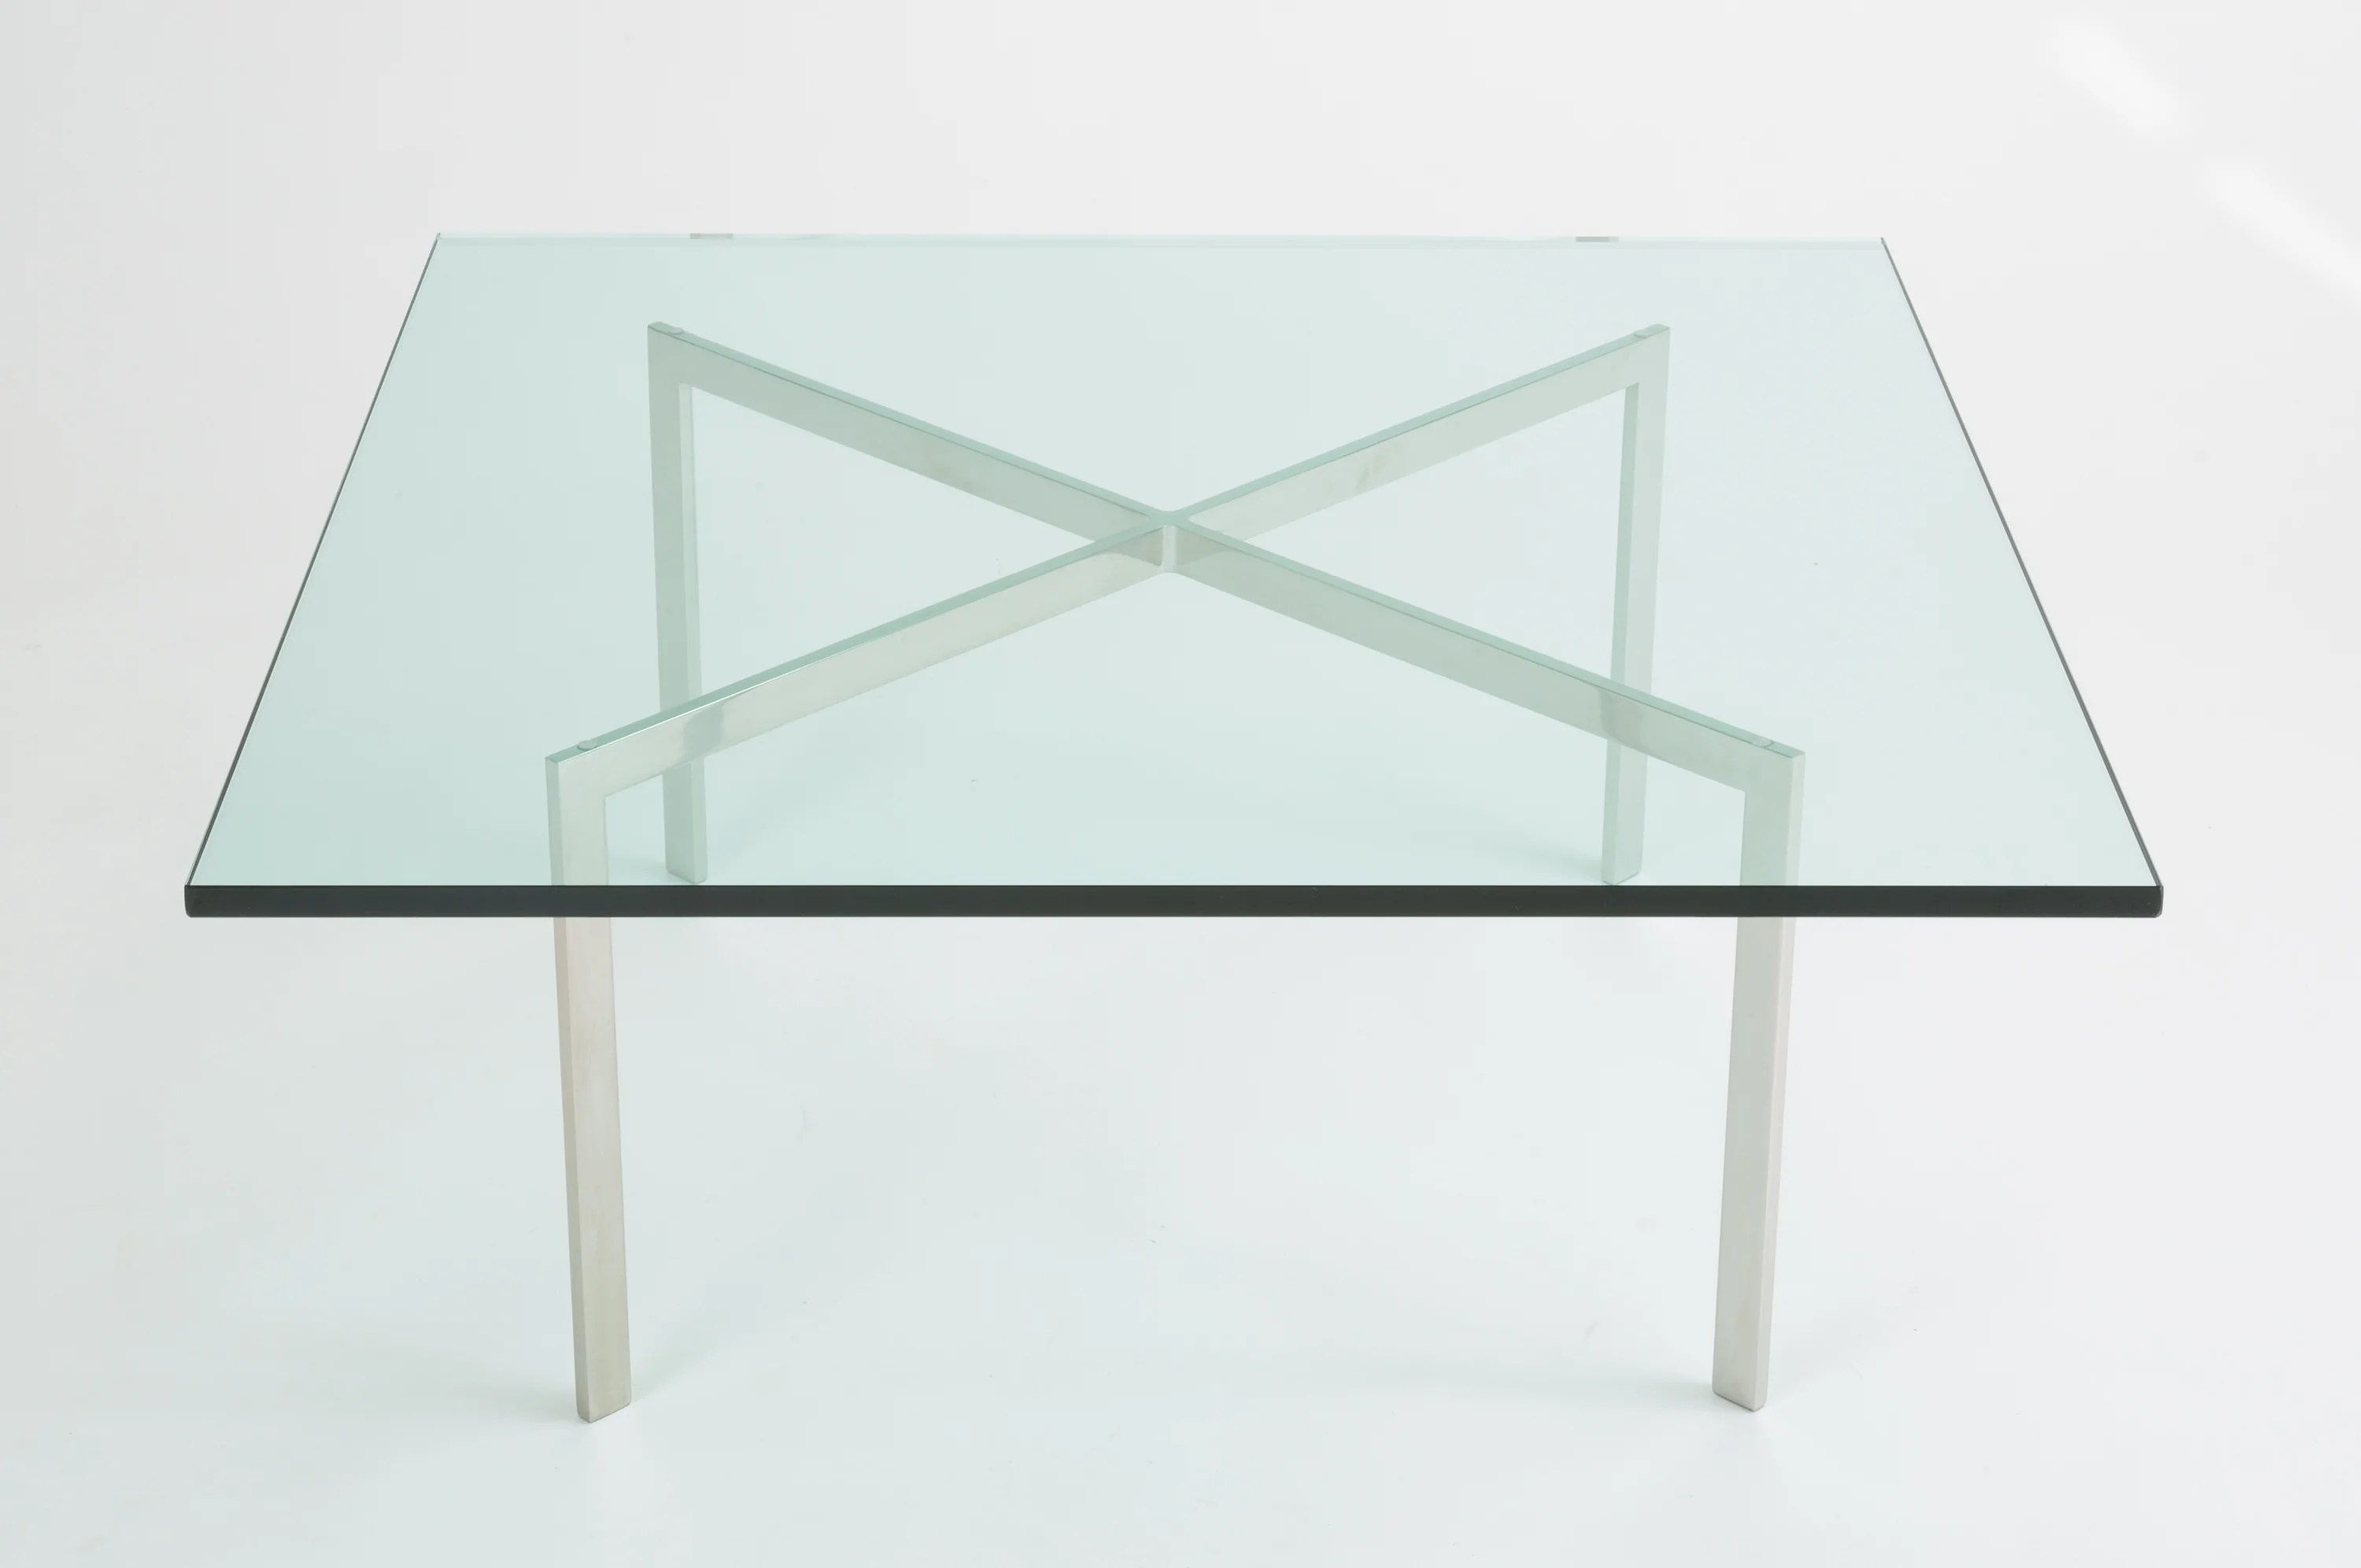 Knoll Table Barcelona Coffee Table By Ludwig Mies Van Der Rohe For Knoll